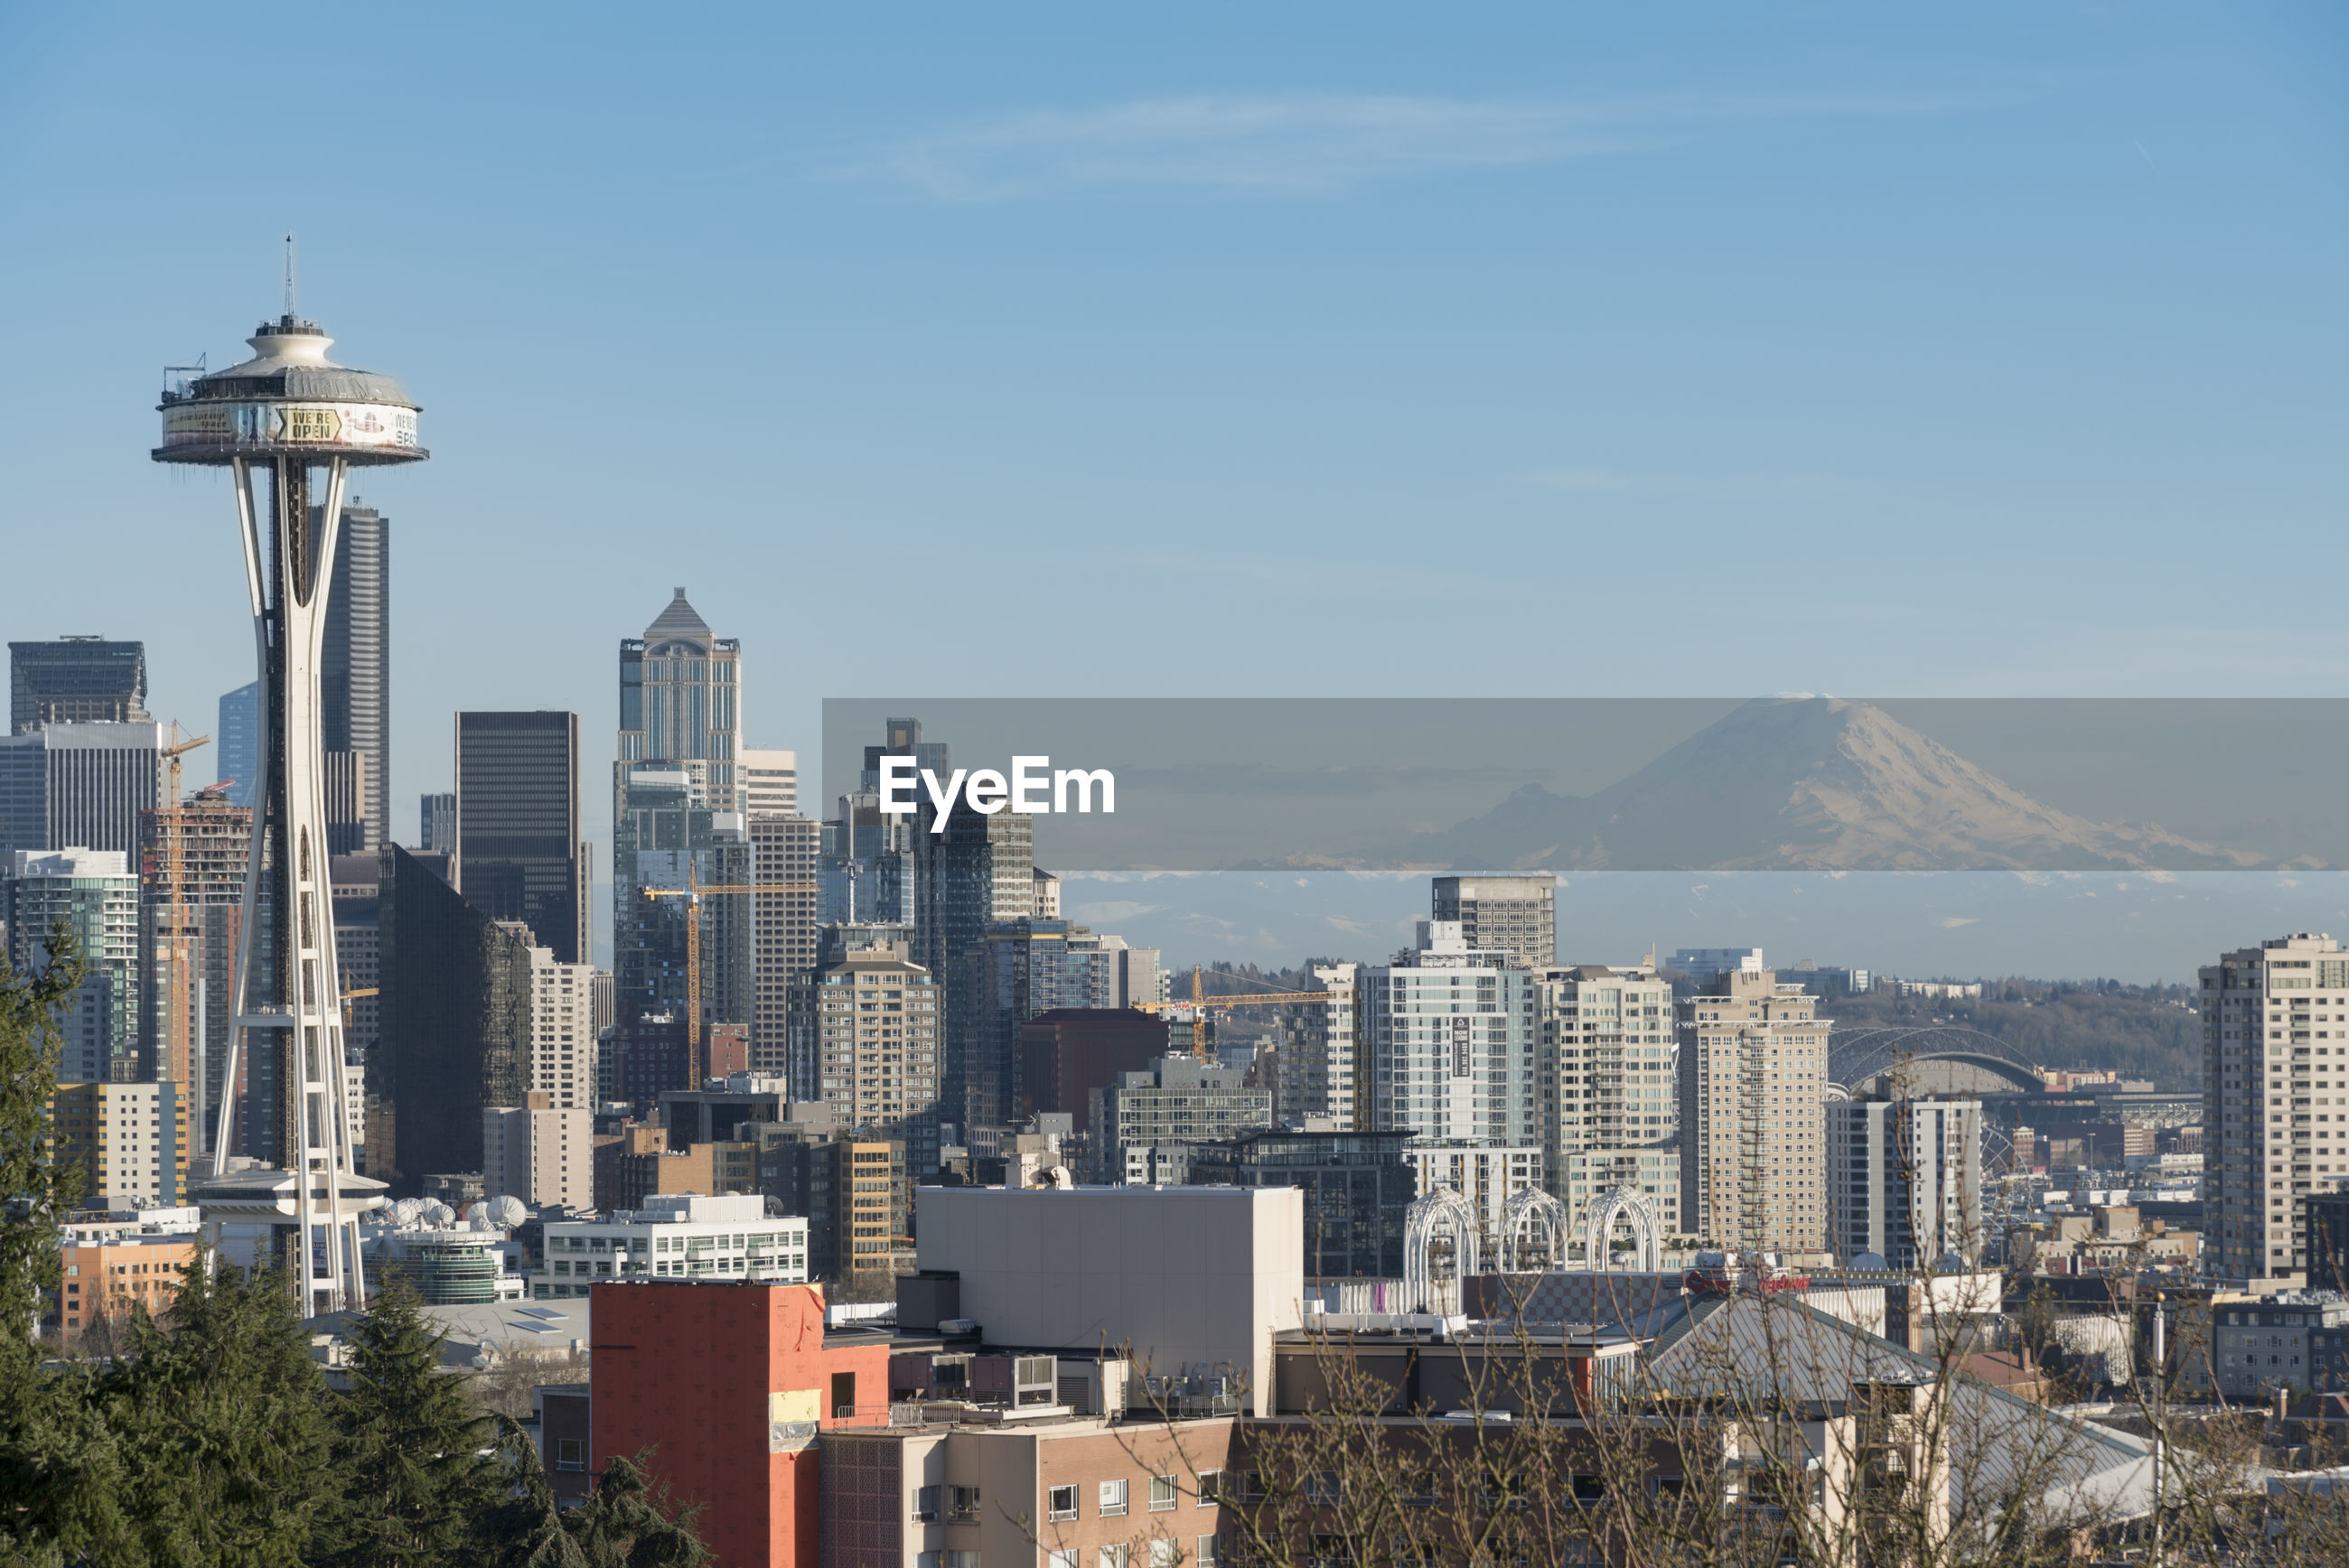 Space needle and buildings in city against sky